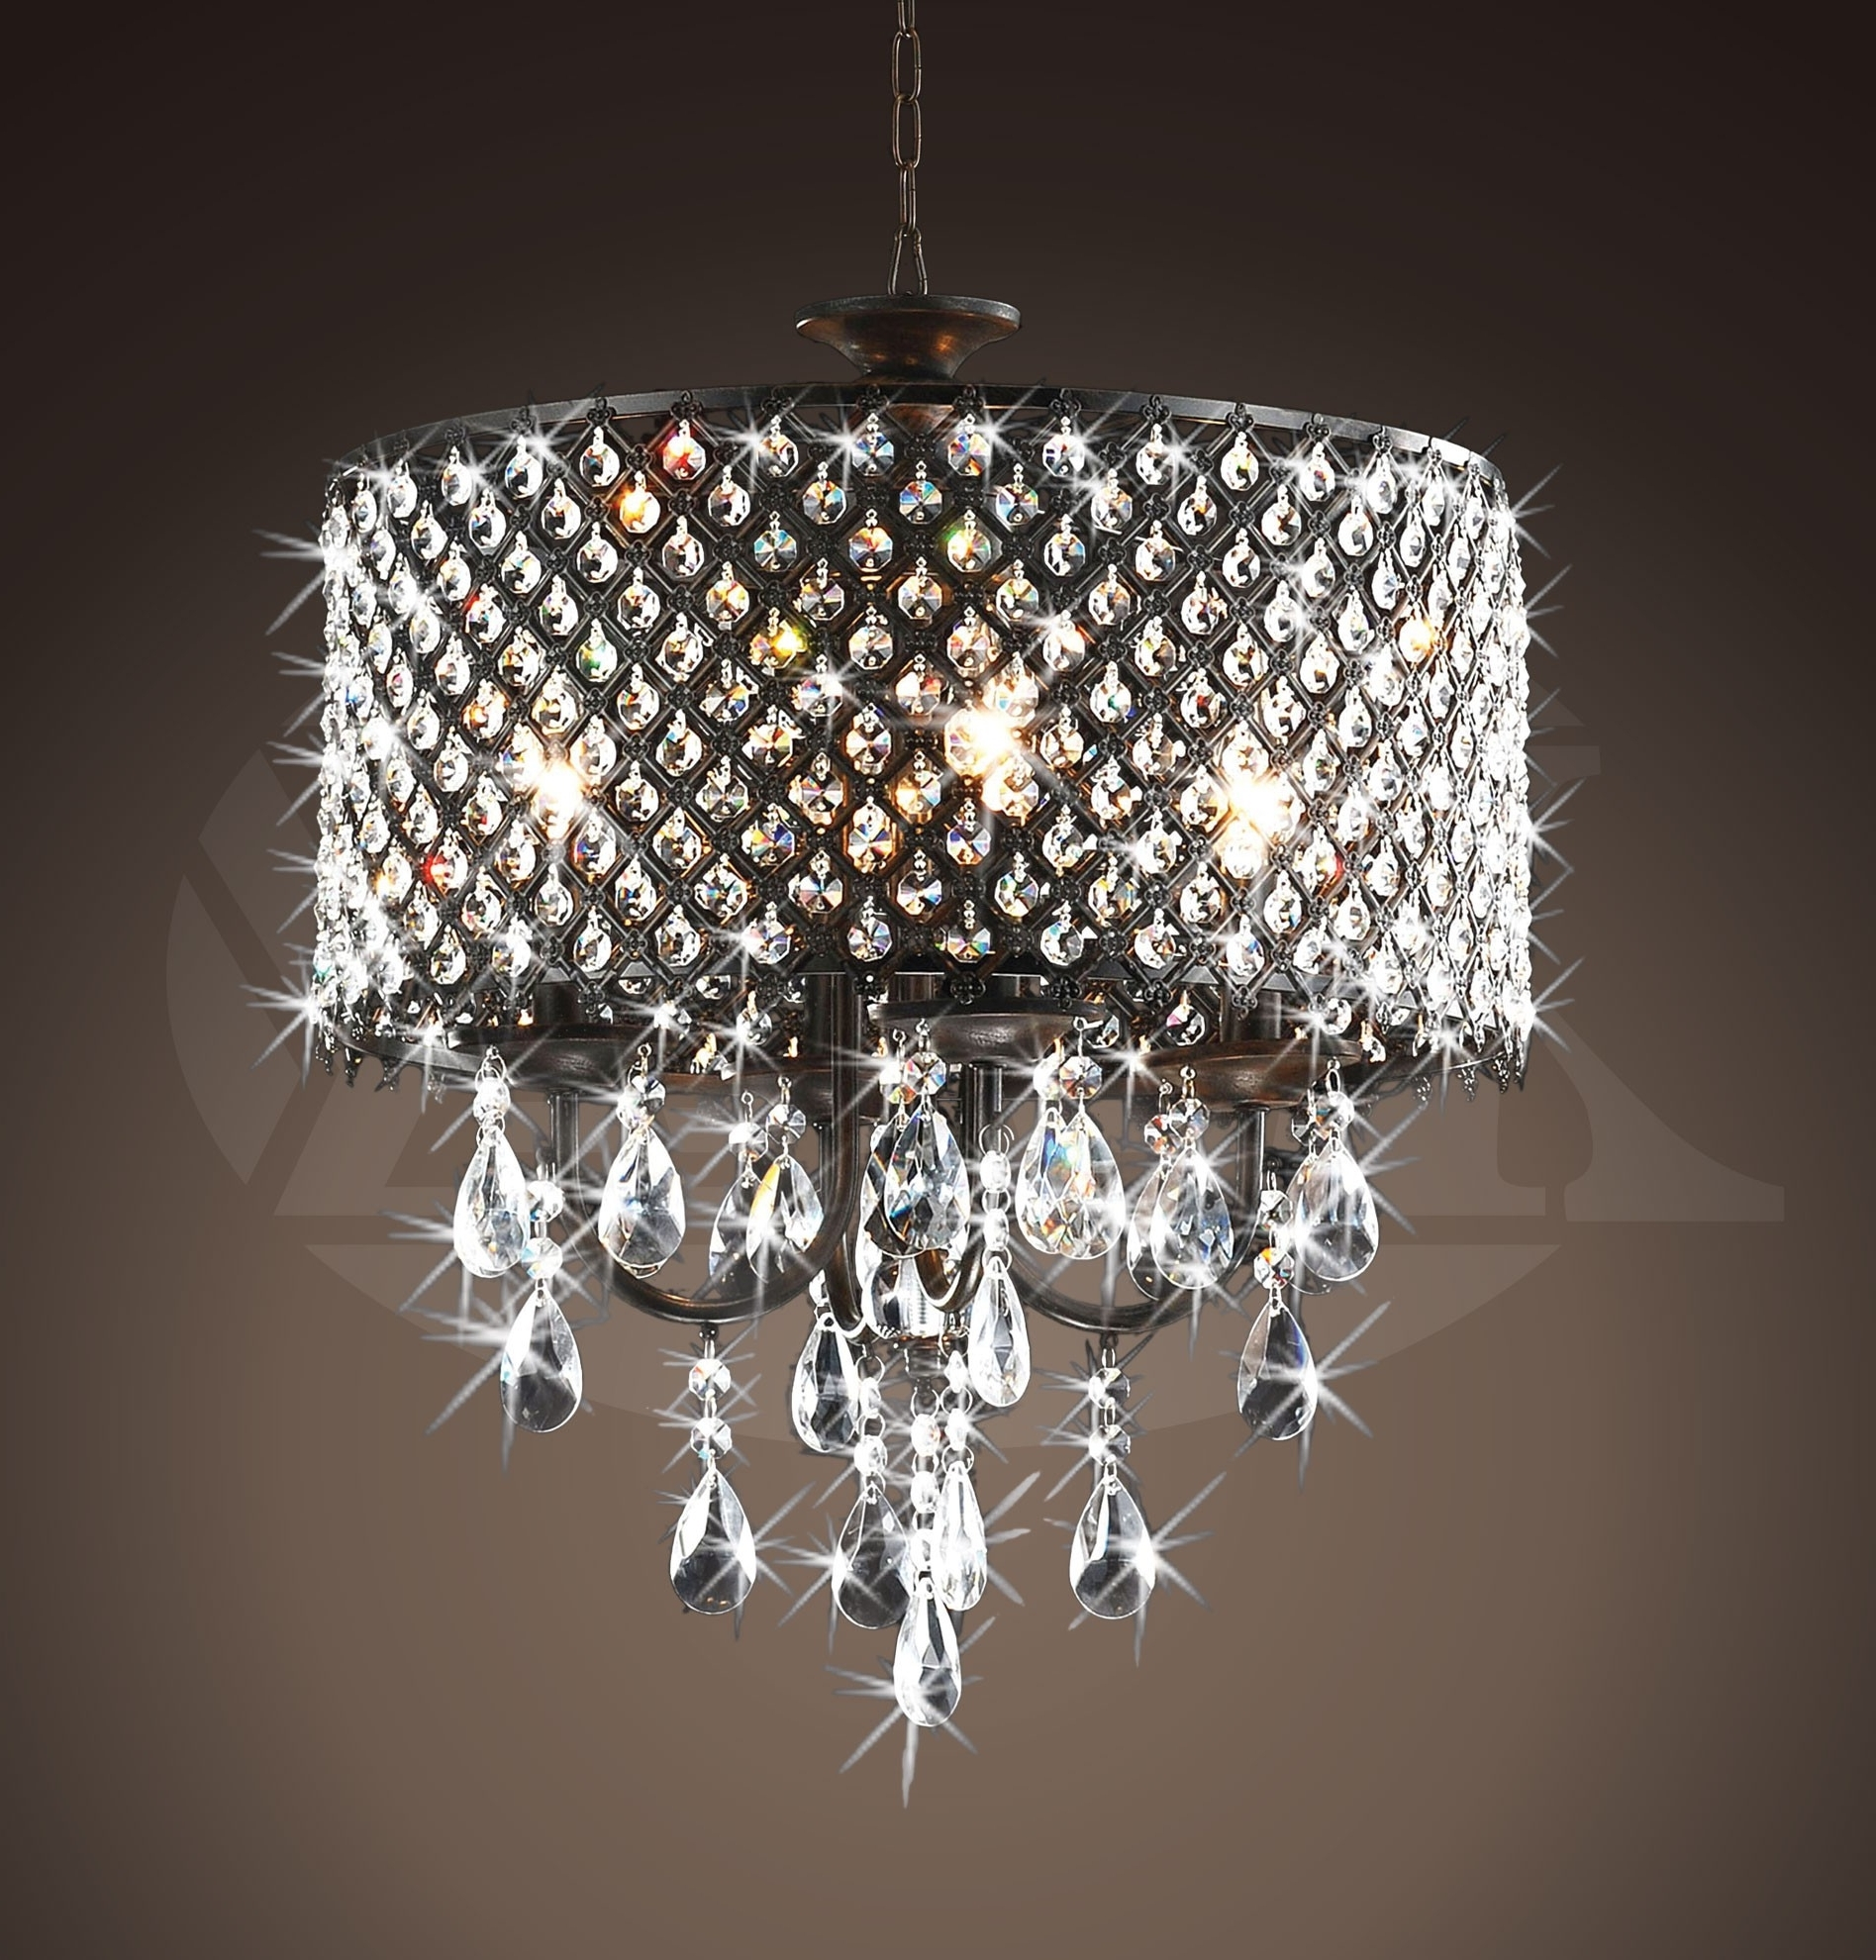 Widely Used Sparkly Chandeliers For Rachelle 4 Light Round Antique Bronze Brass Crystal Chandelier (View 2 of 15)